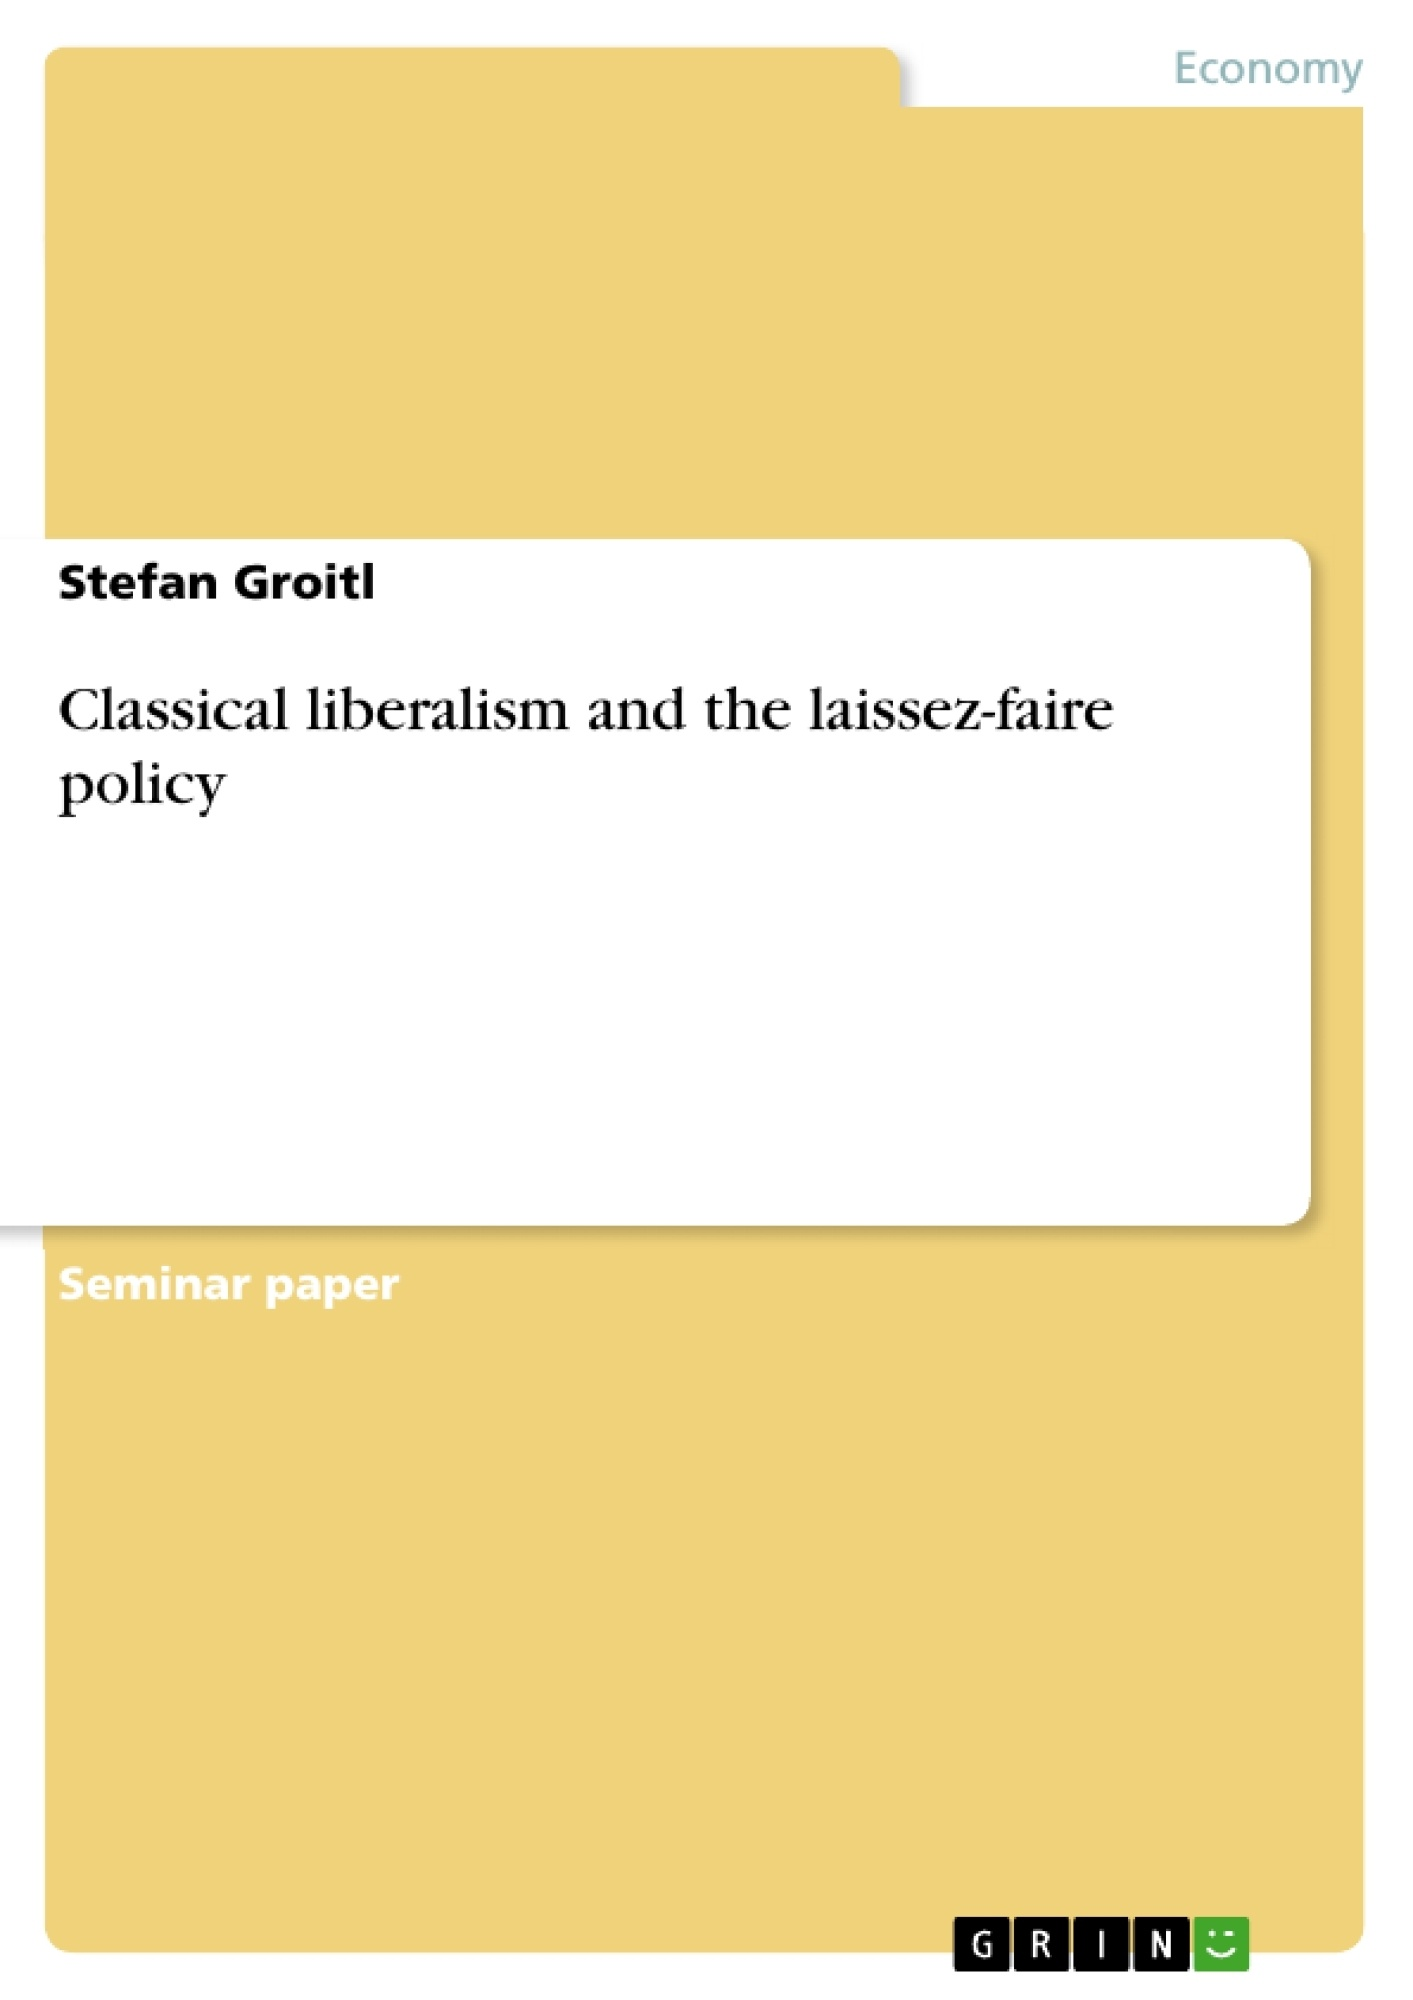 Title: Classical liberalism and the laissez-faire policy